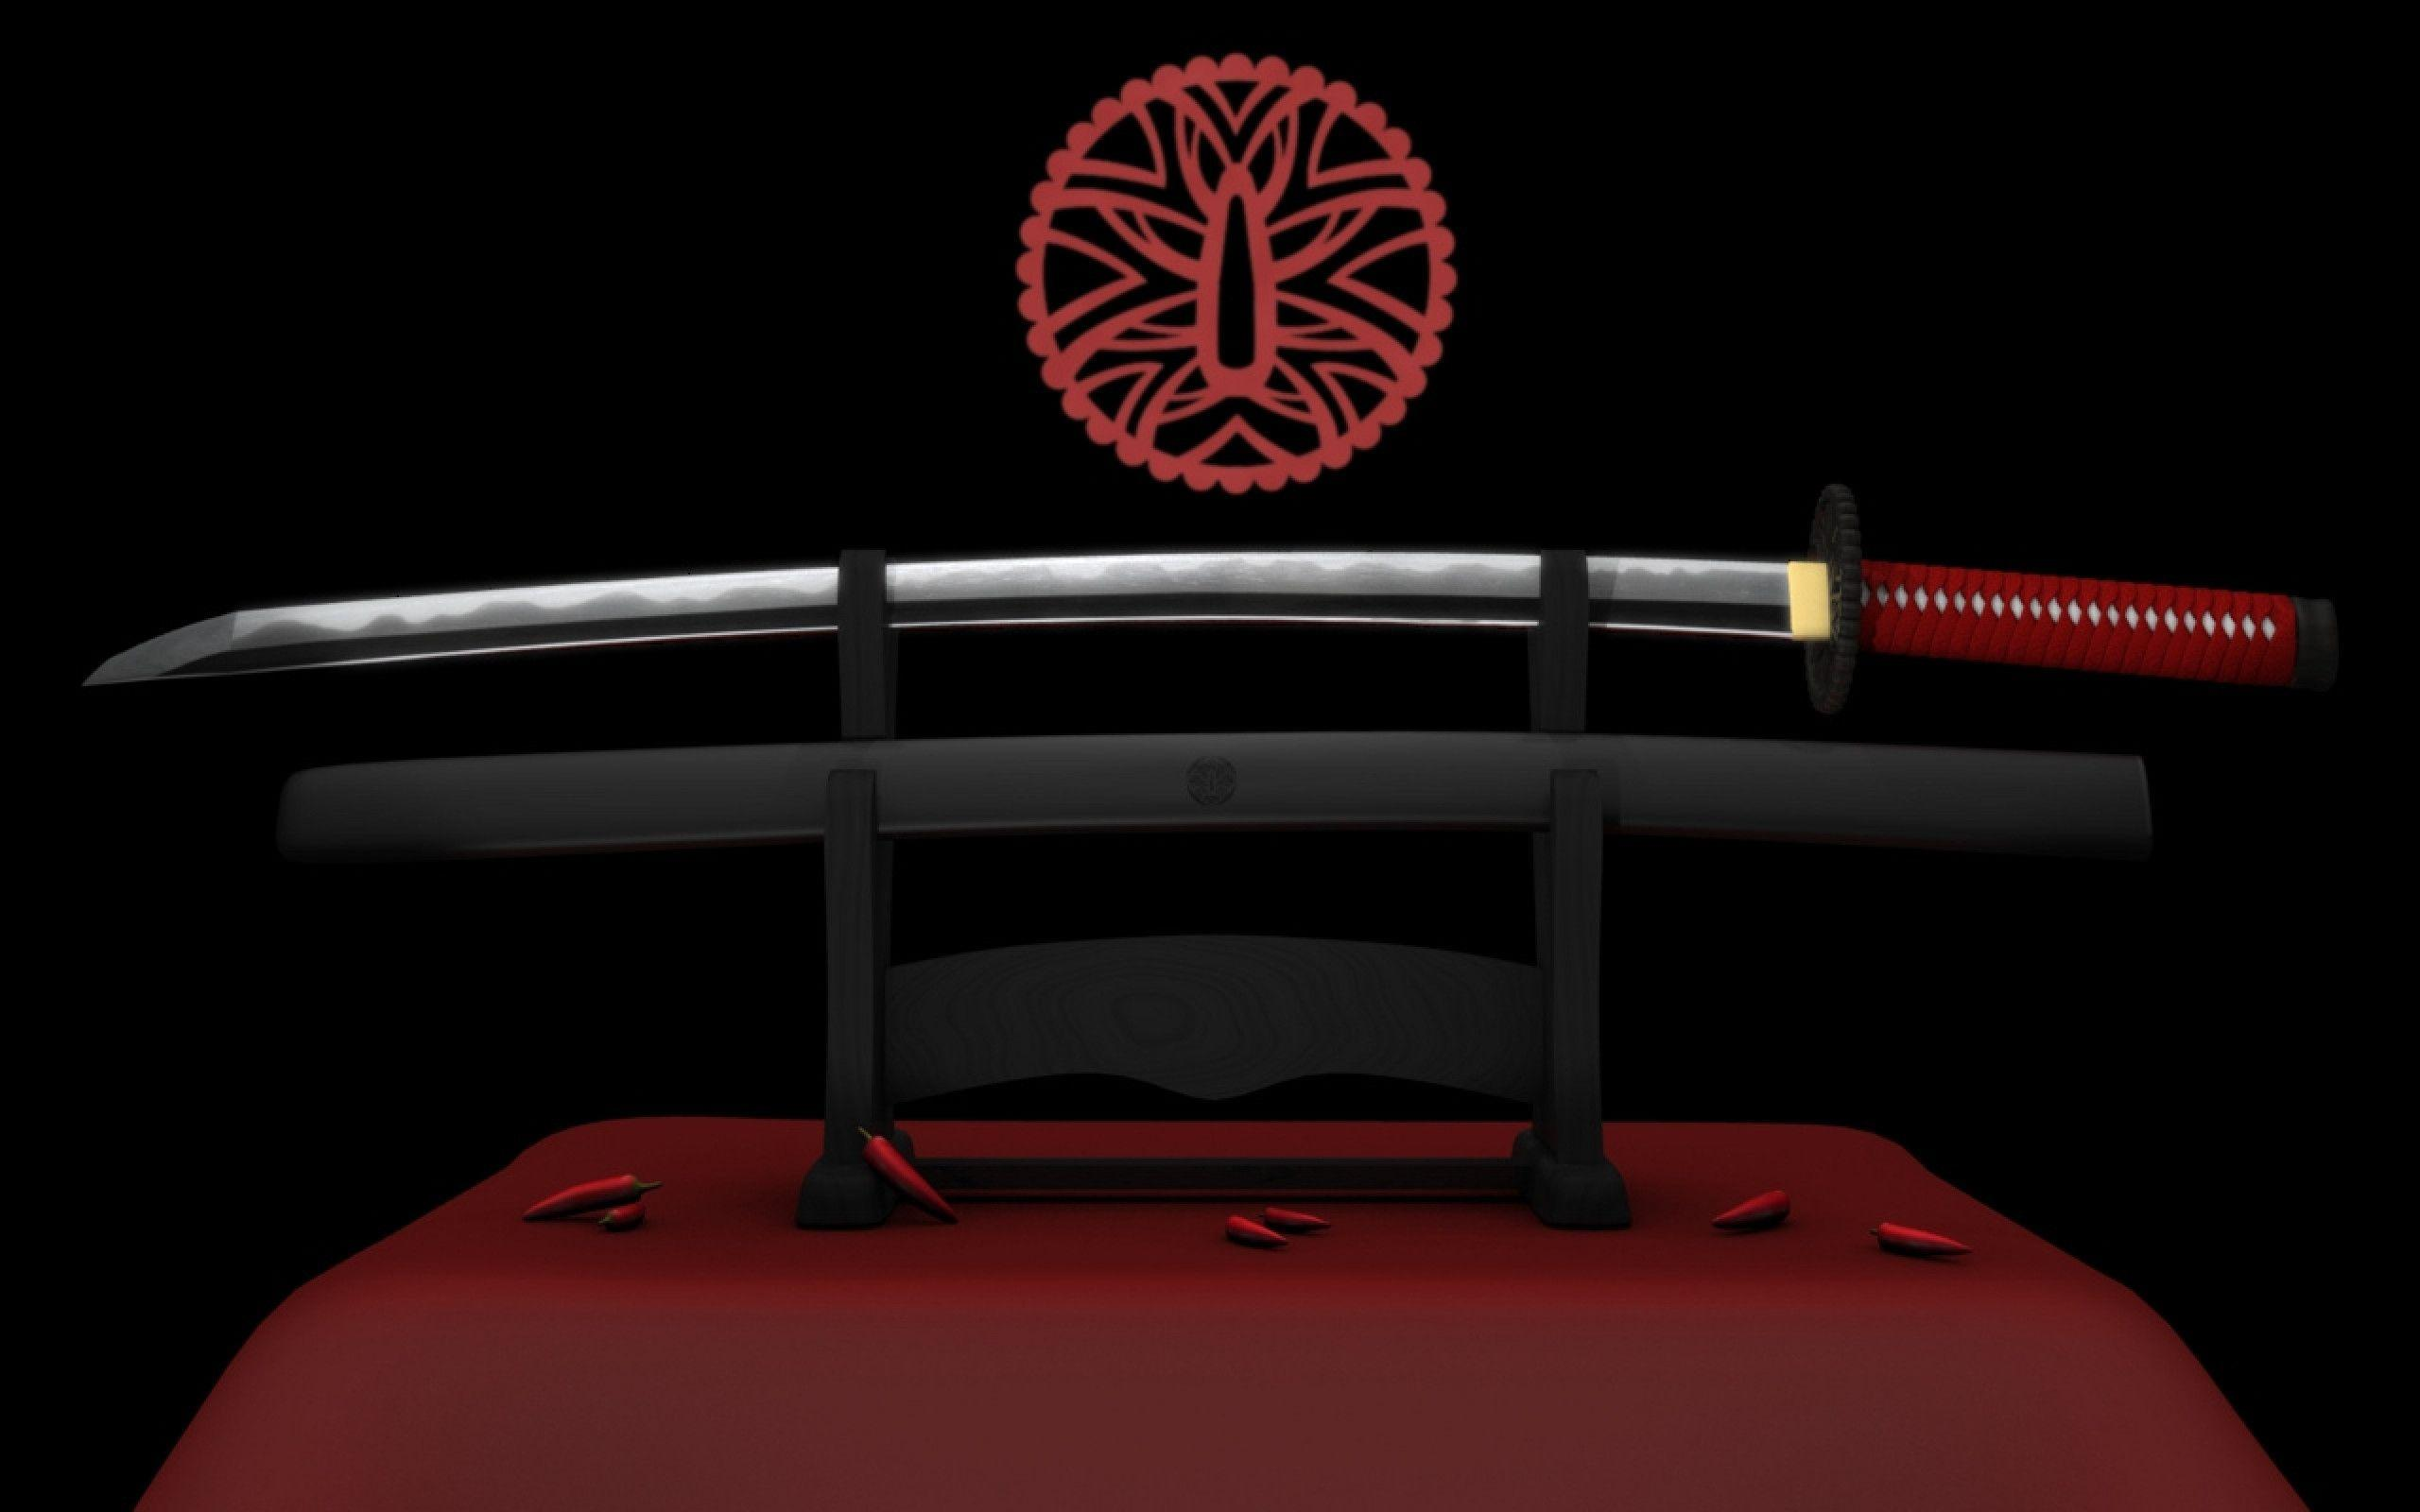 samurai katana wallpaper hd - photo #10